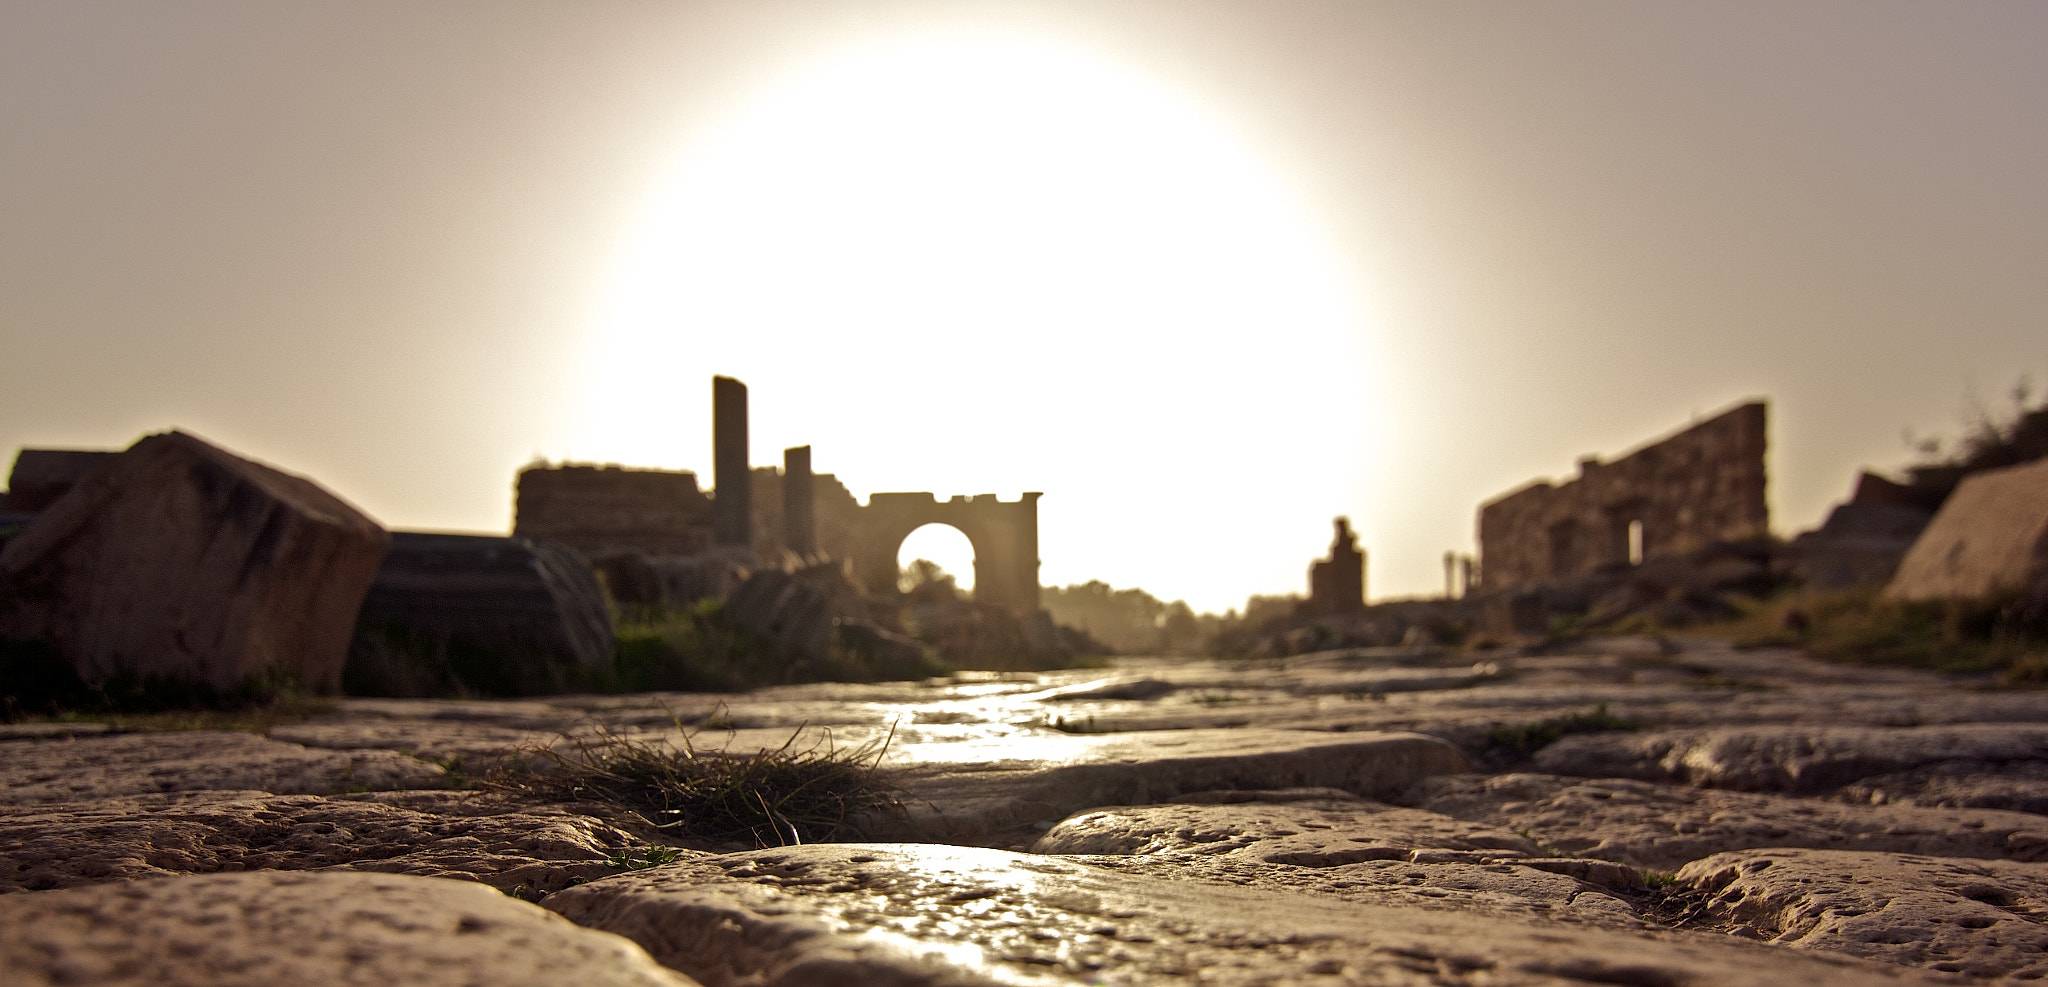 Photograph leptis magna by Sufian Alashger on 500px